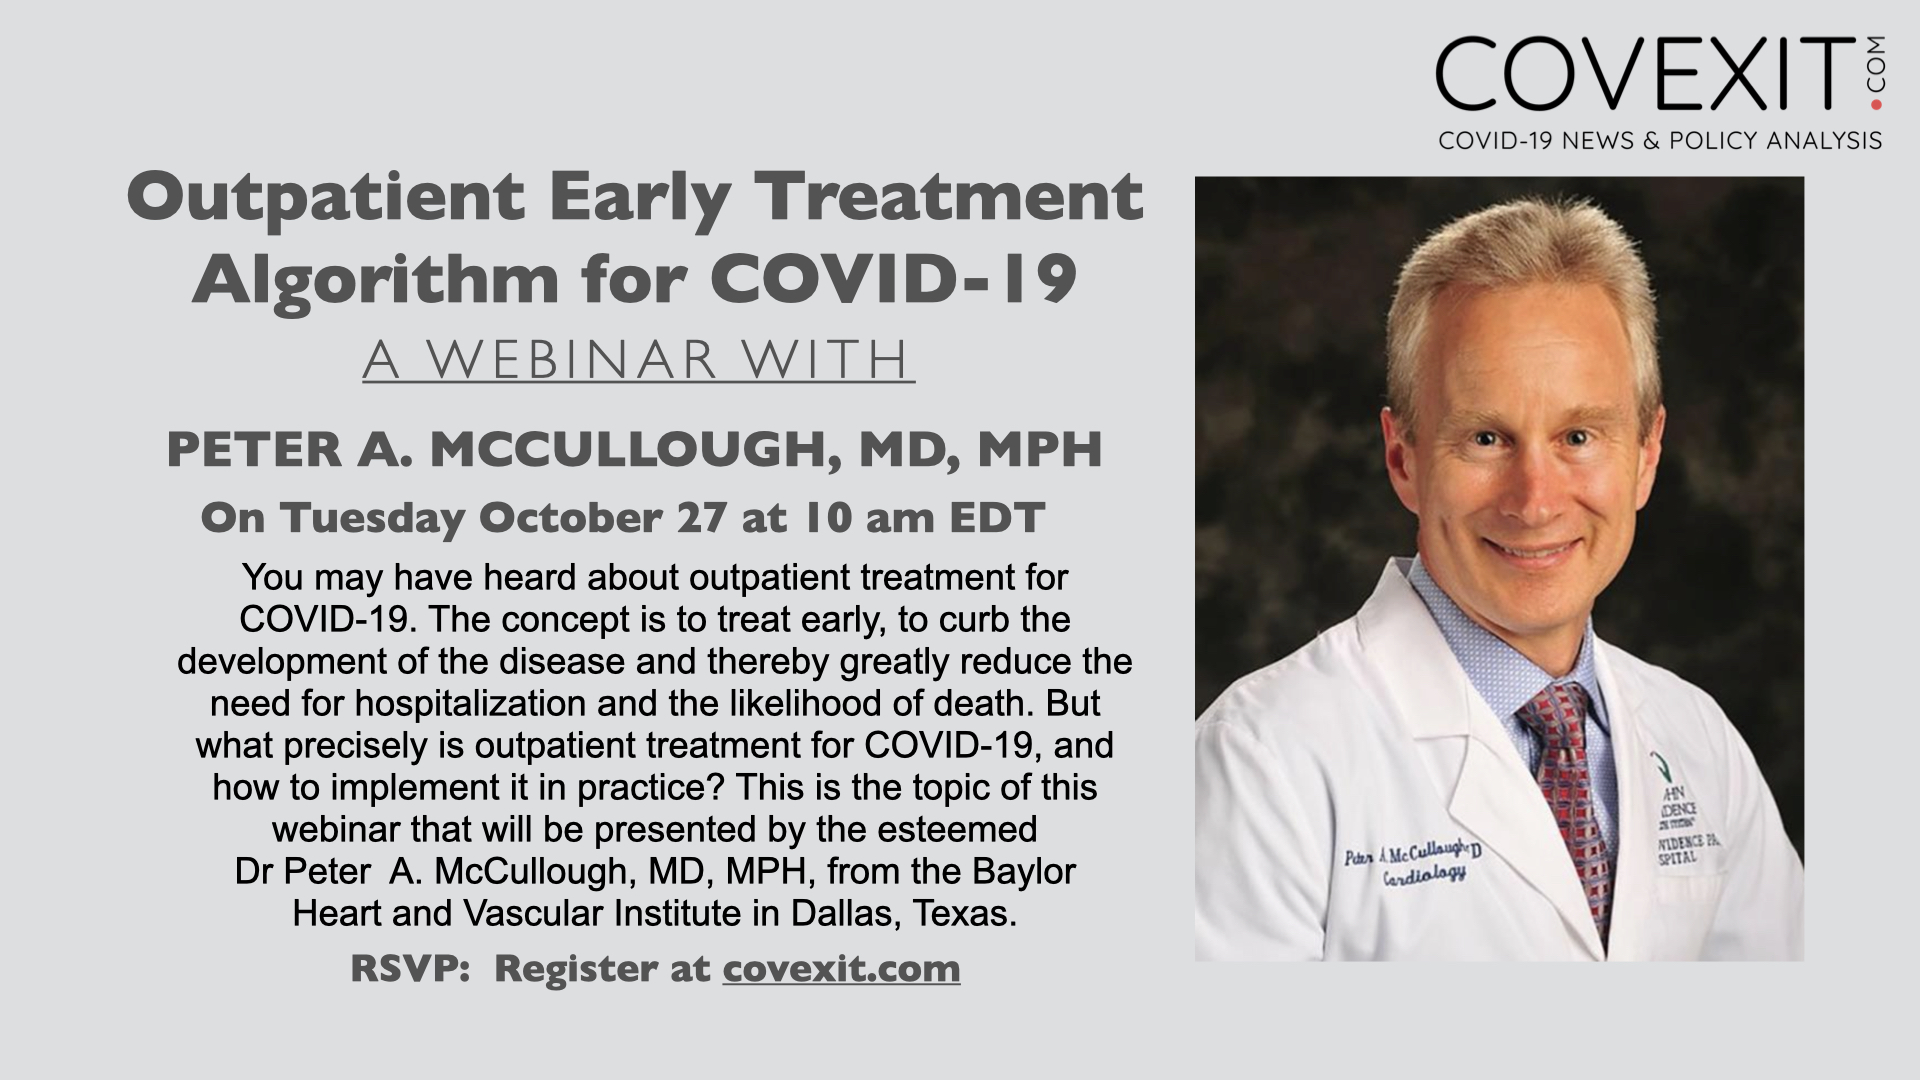 Outpatient Treatment Algorithm for COVID-19 - a Webinar